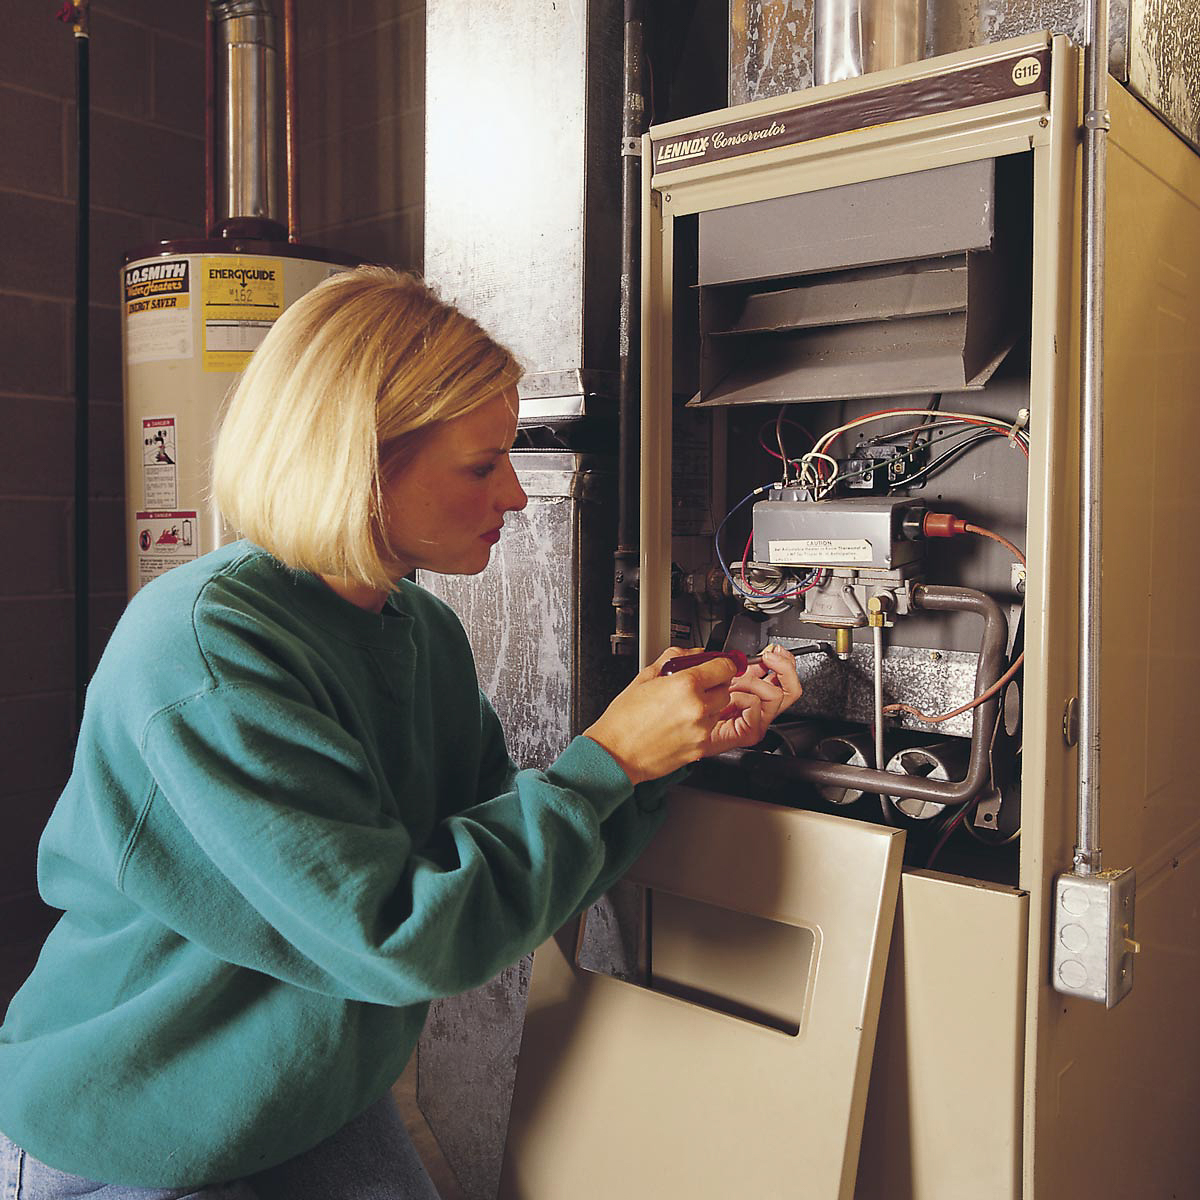 LHR plumbing and heating, new hamshire manchester plumber, hvac manchester nh, troubleshooting your furnace until a manchester hvac company can get to you